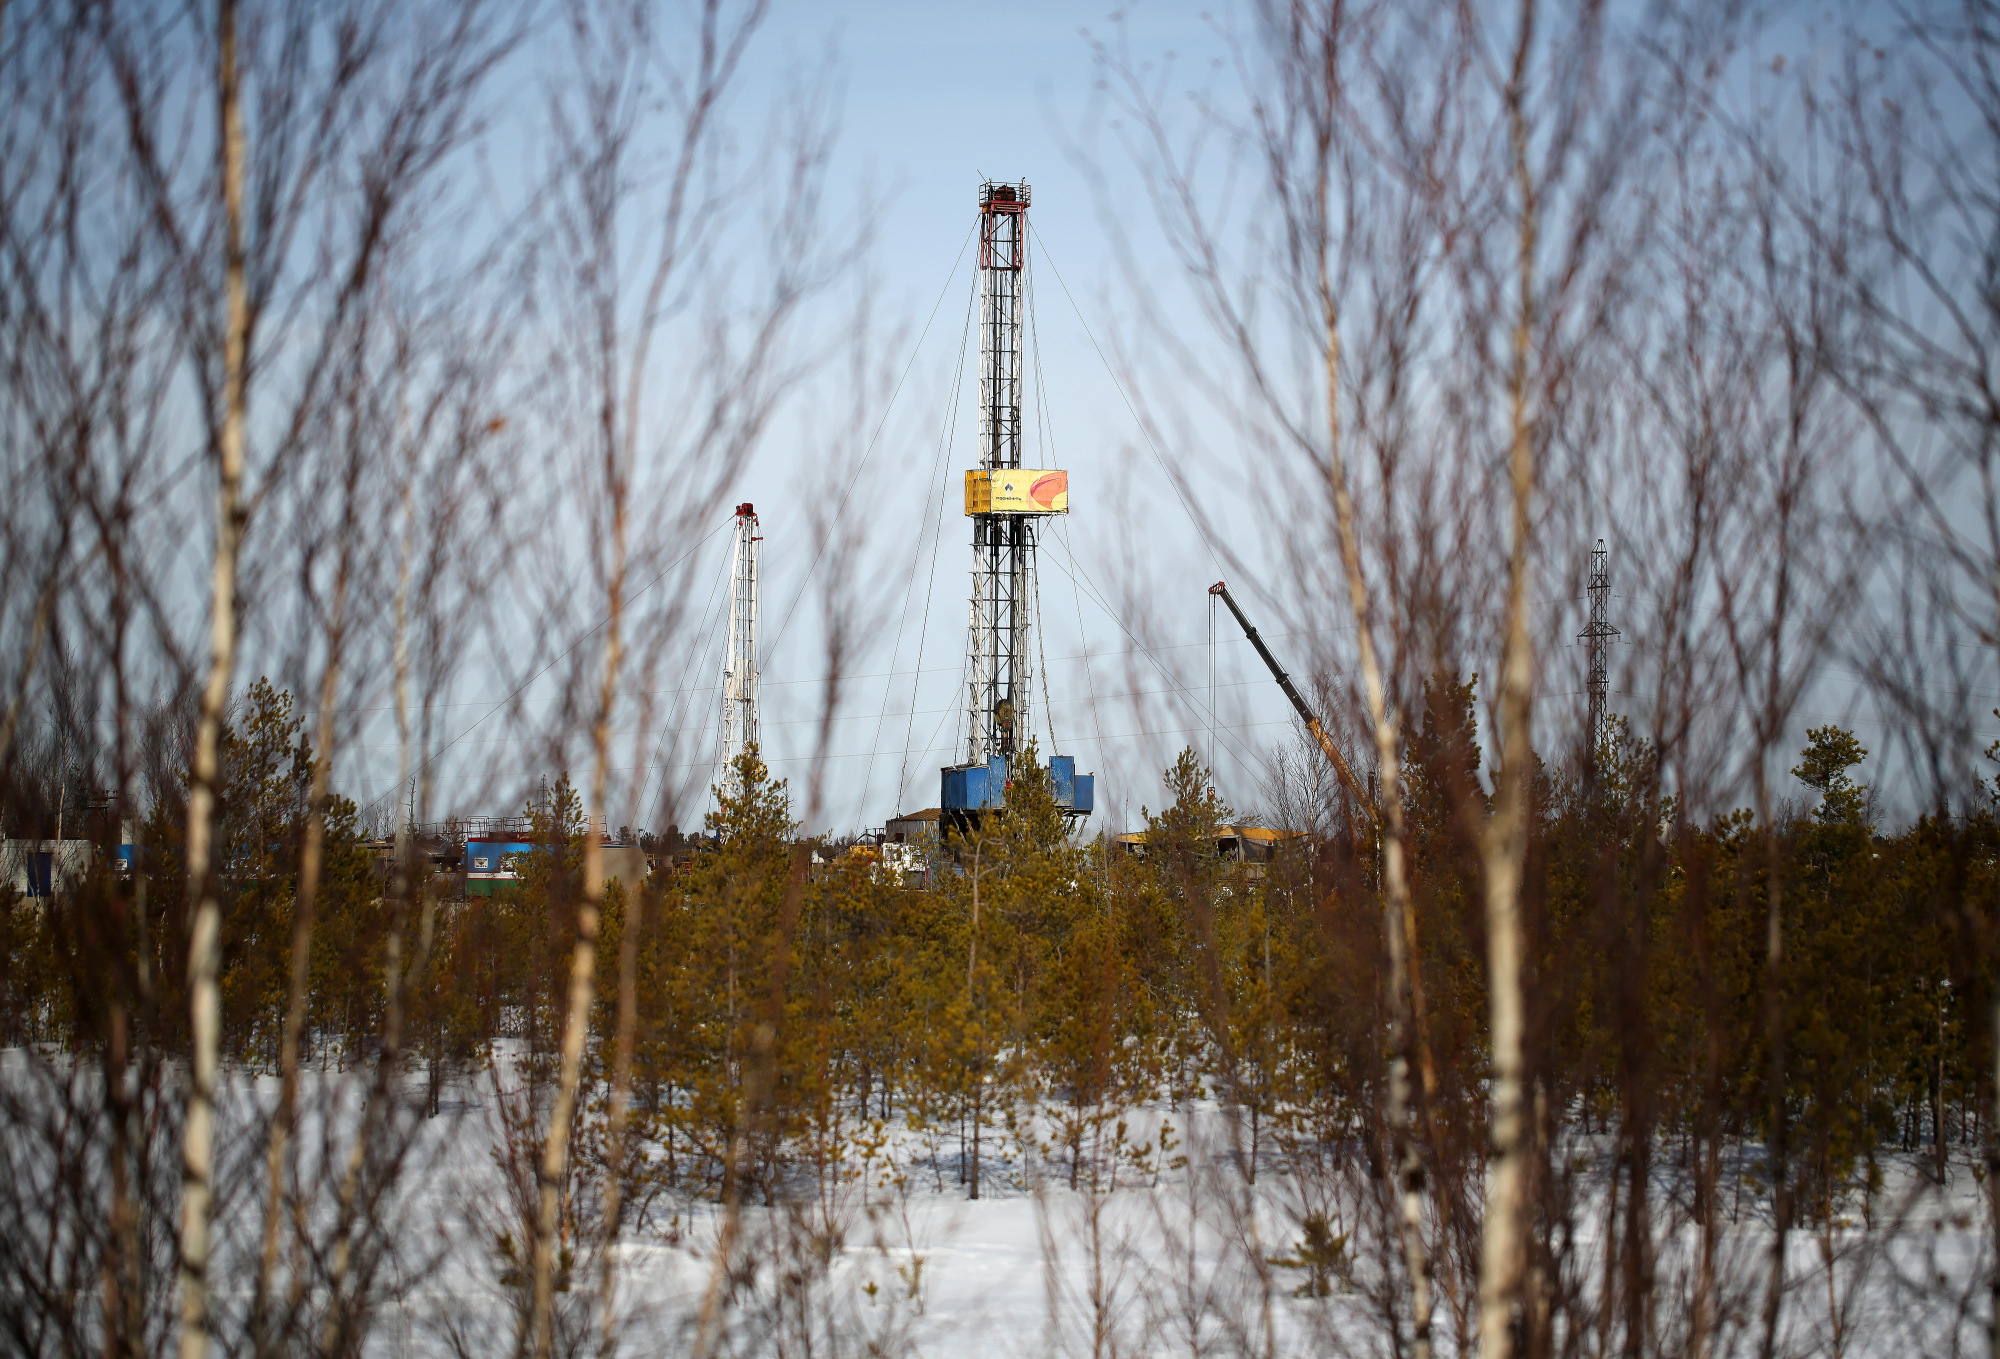 A drilling rig stands in an oilfield in Russia. Photographer: Andrey Rudakov/Bloomberg